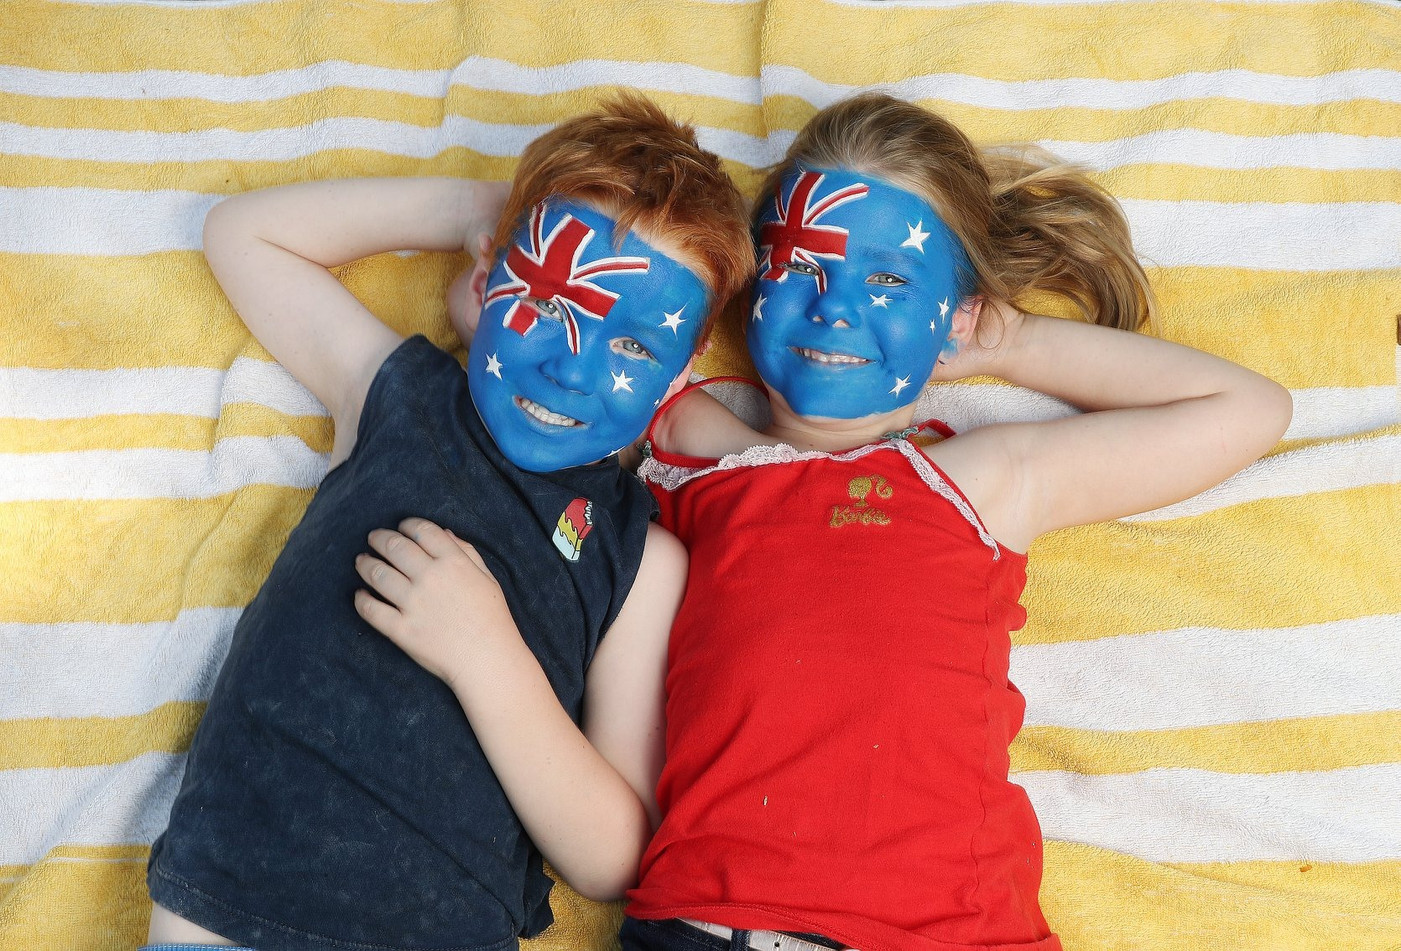 Siblings with Australian flag face paint designs, painted by Beth Joyce for the Brisbane Courier Mail.